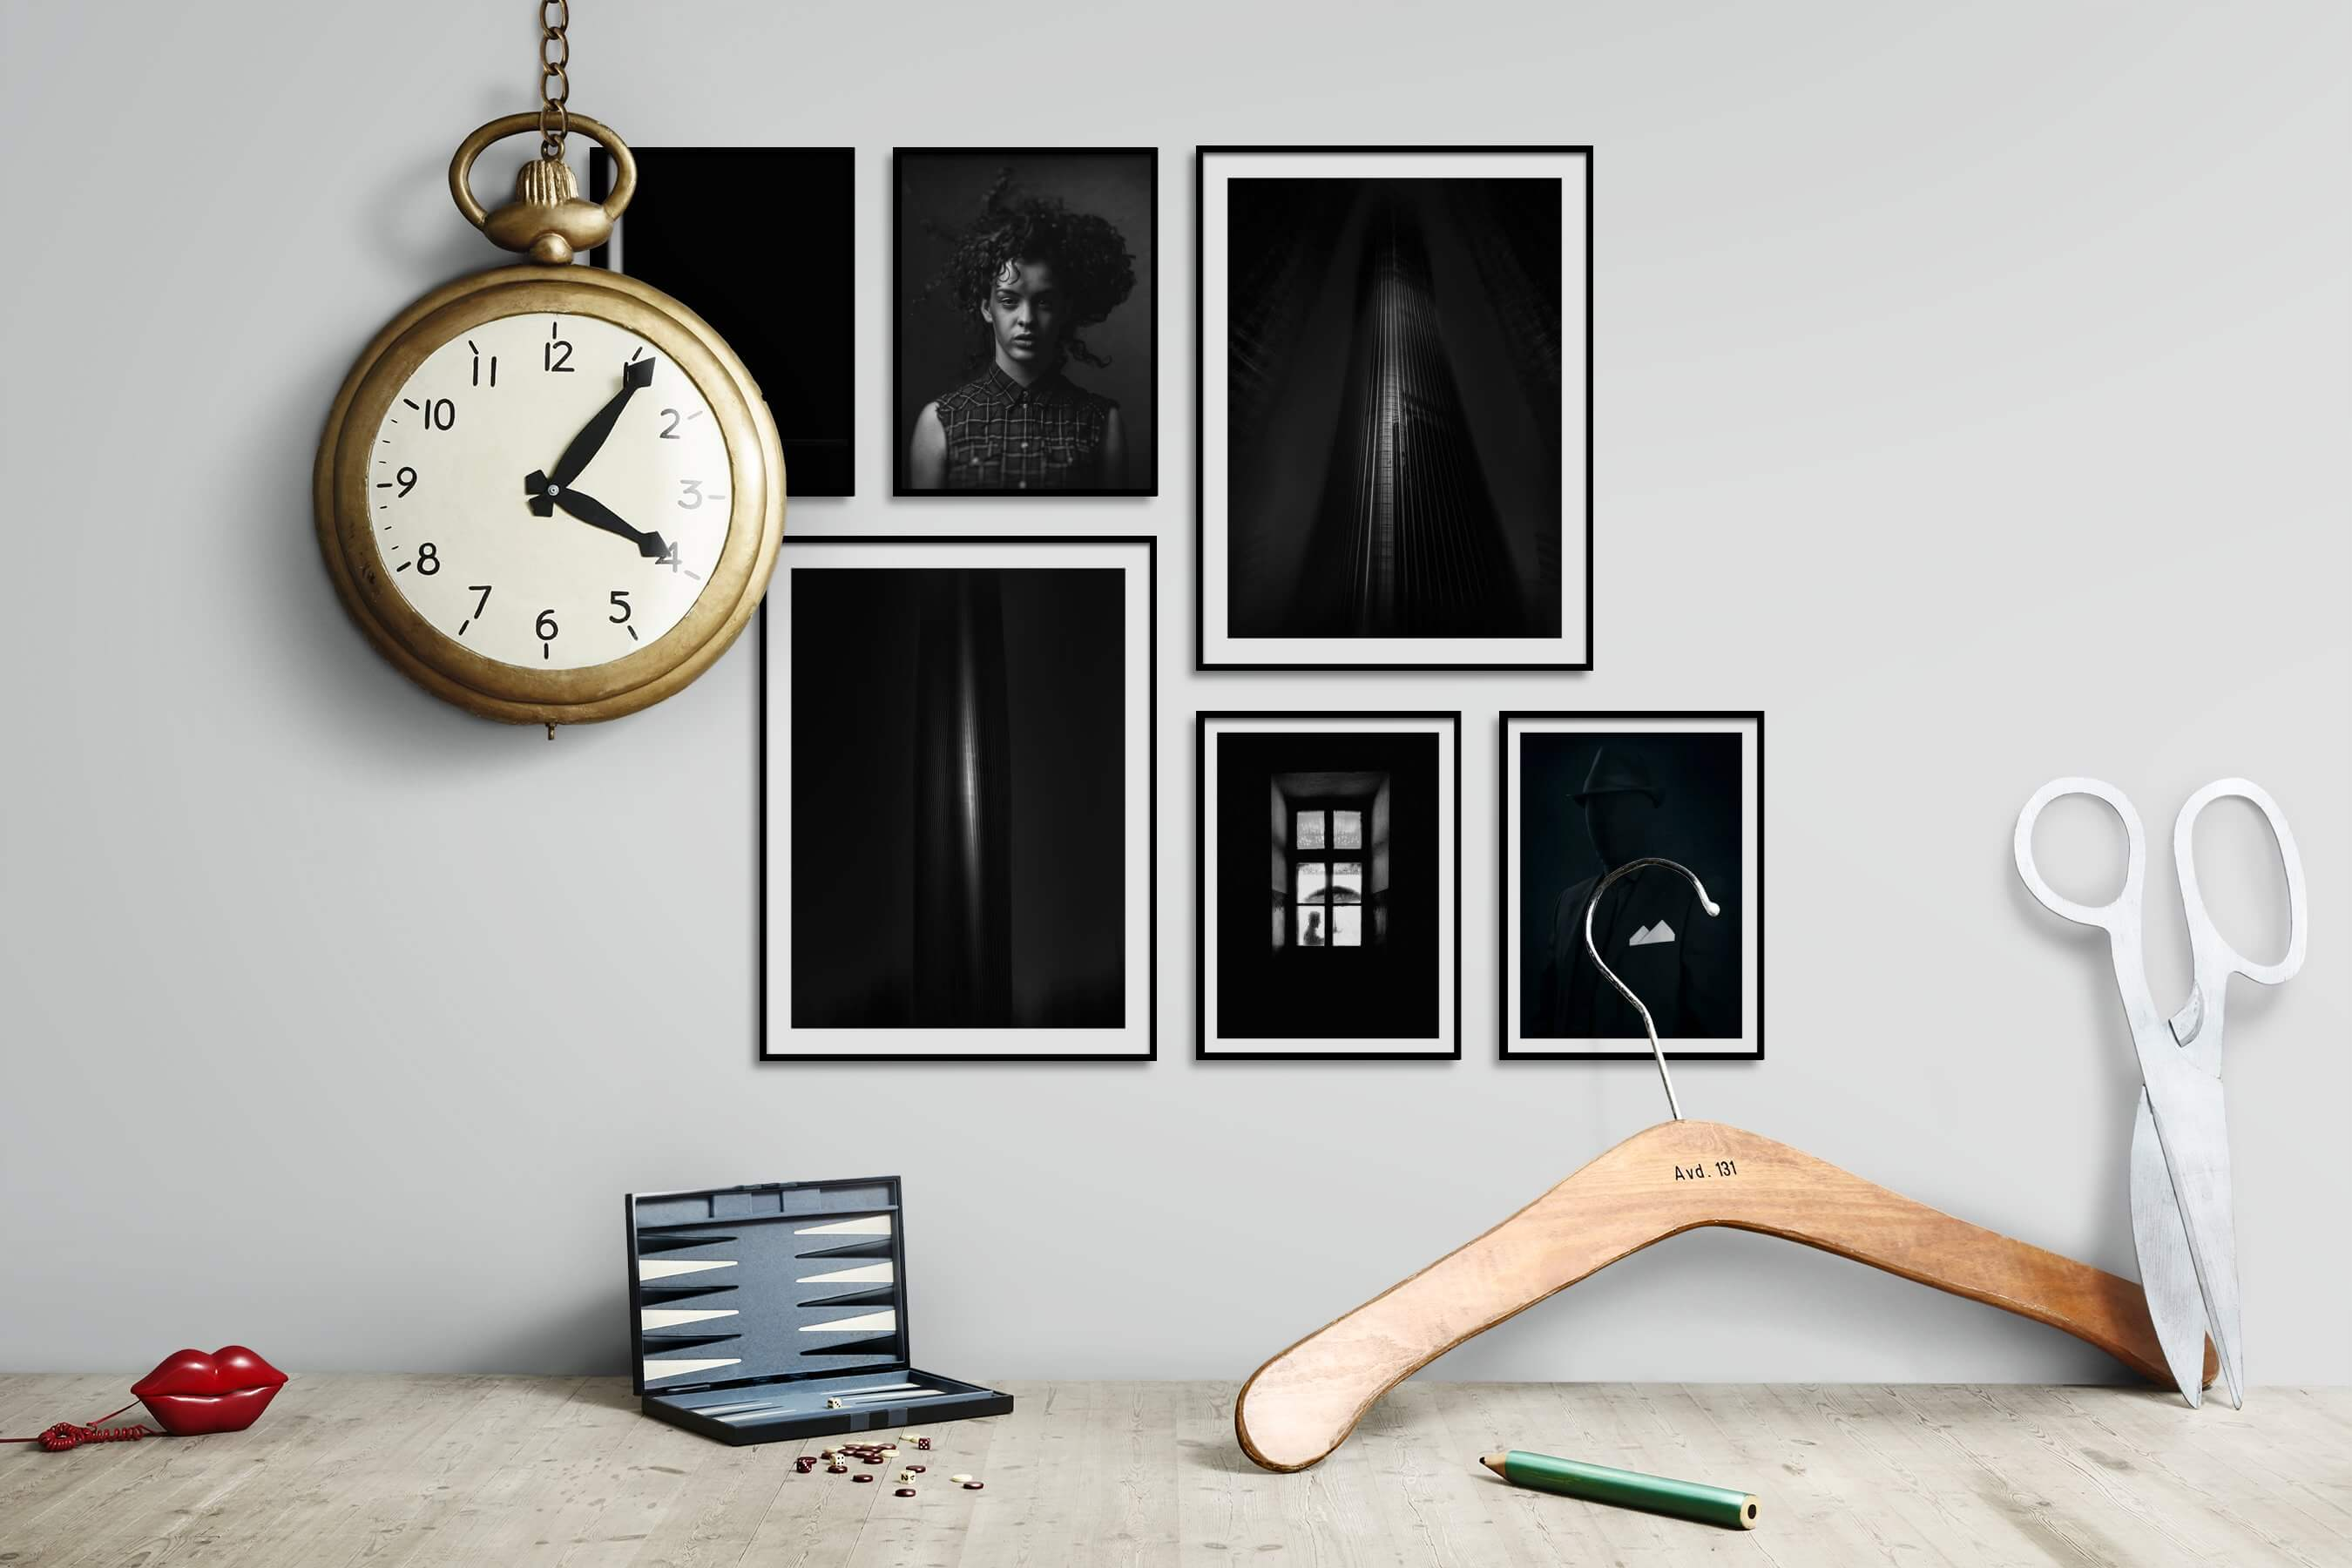 Gallery wall idea with six framed pictures arranged on a wall depicting Artsy, Black & White, Dark Tones, For the Minimalist, Fashion & Beauty, and City Life